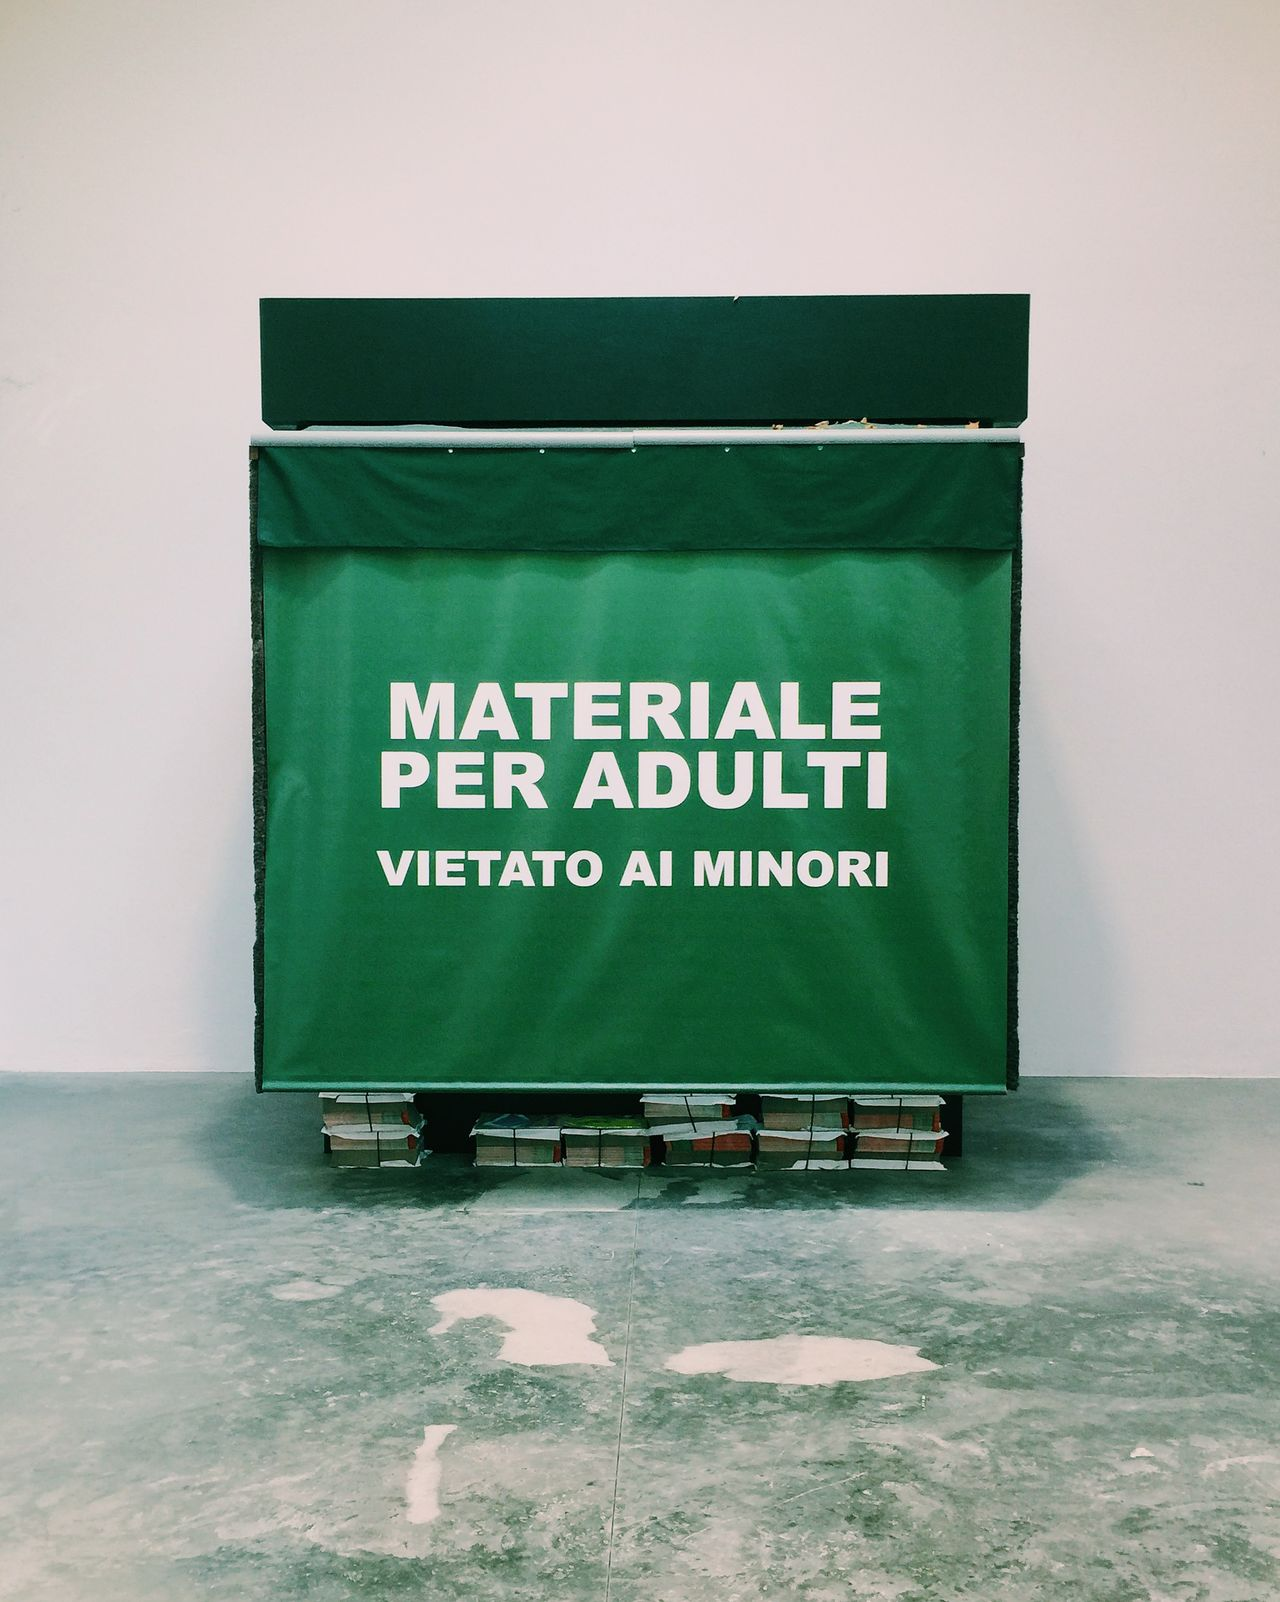 Exibition Minimalism Art La Biennale Di Venezia Venicebiennale2015 Adult Sensitive From Vienna To Milan